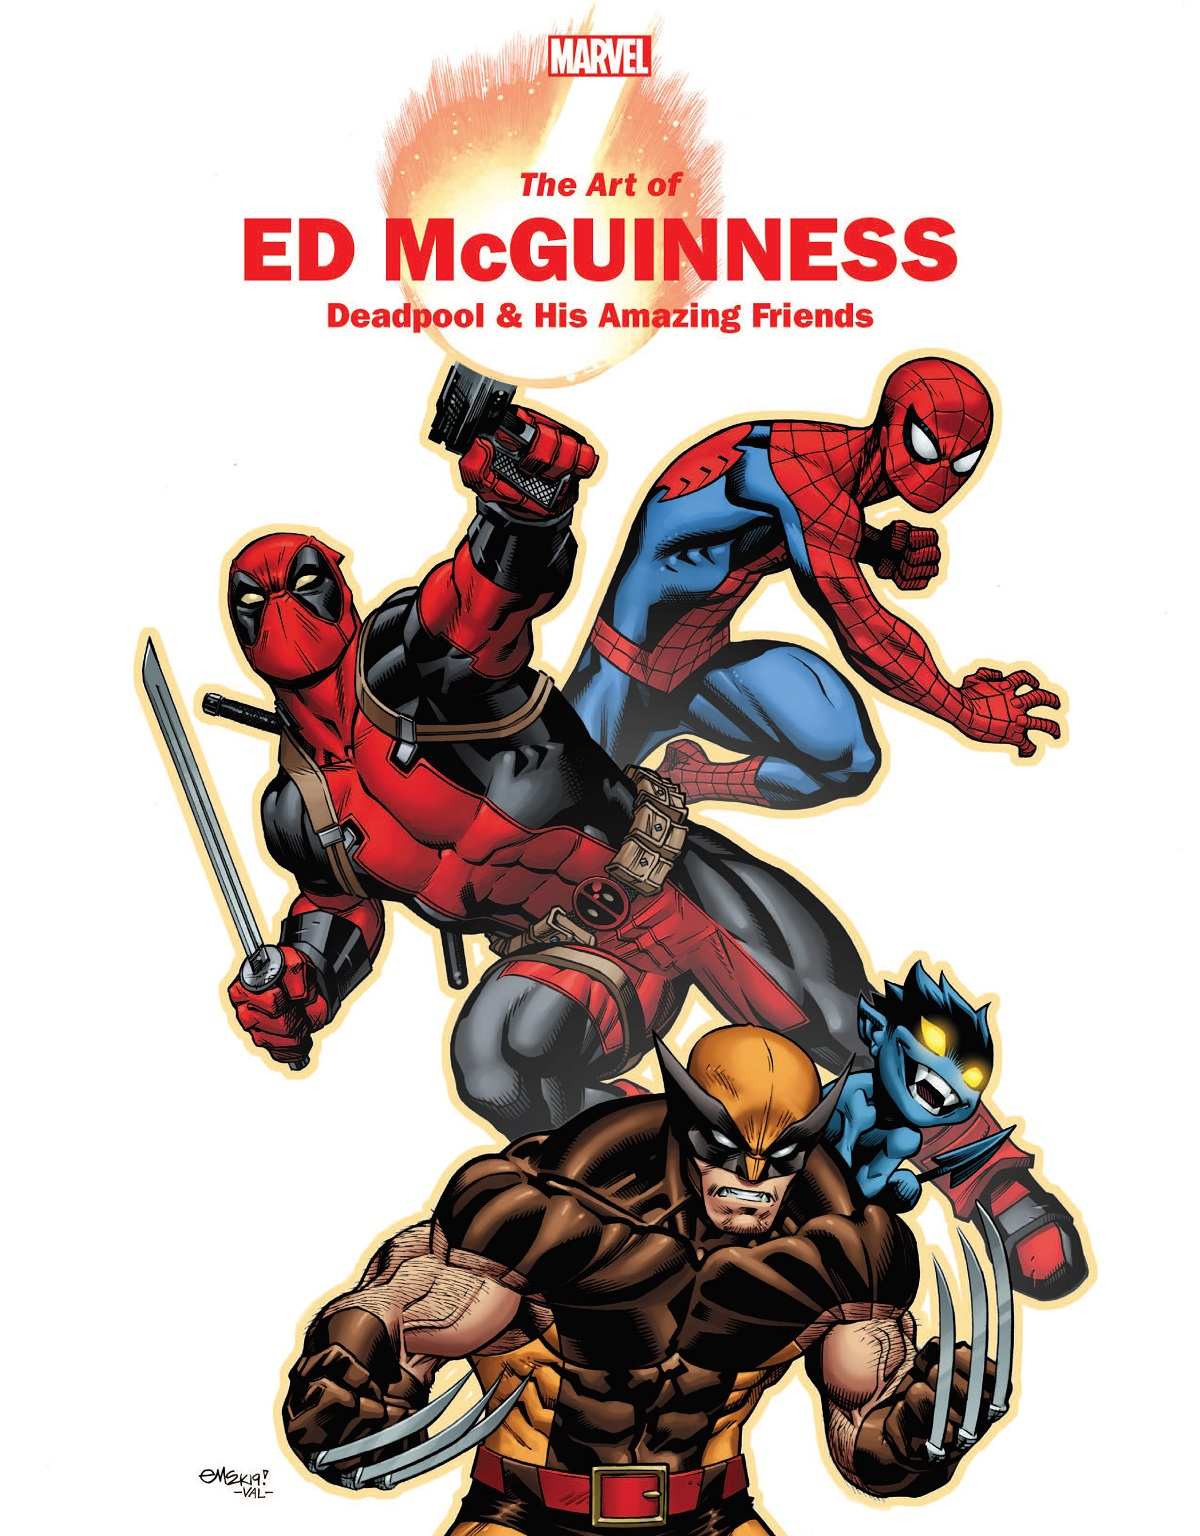 Marvel Monograph: The Art Of Ed Mcguinness - Deadpool & His Amazing Friends (Trade Paperback)